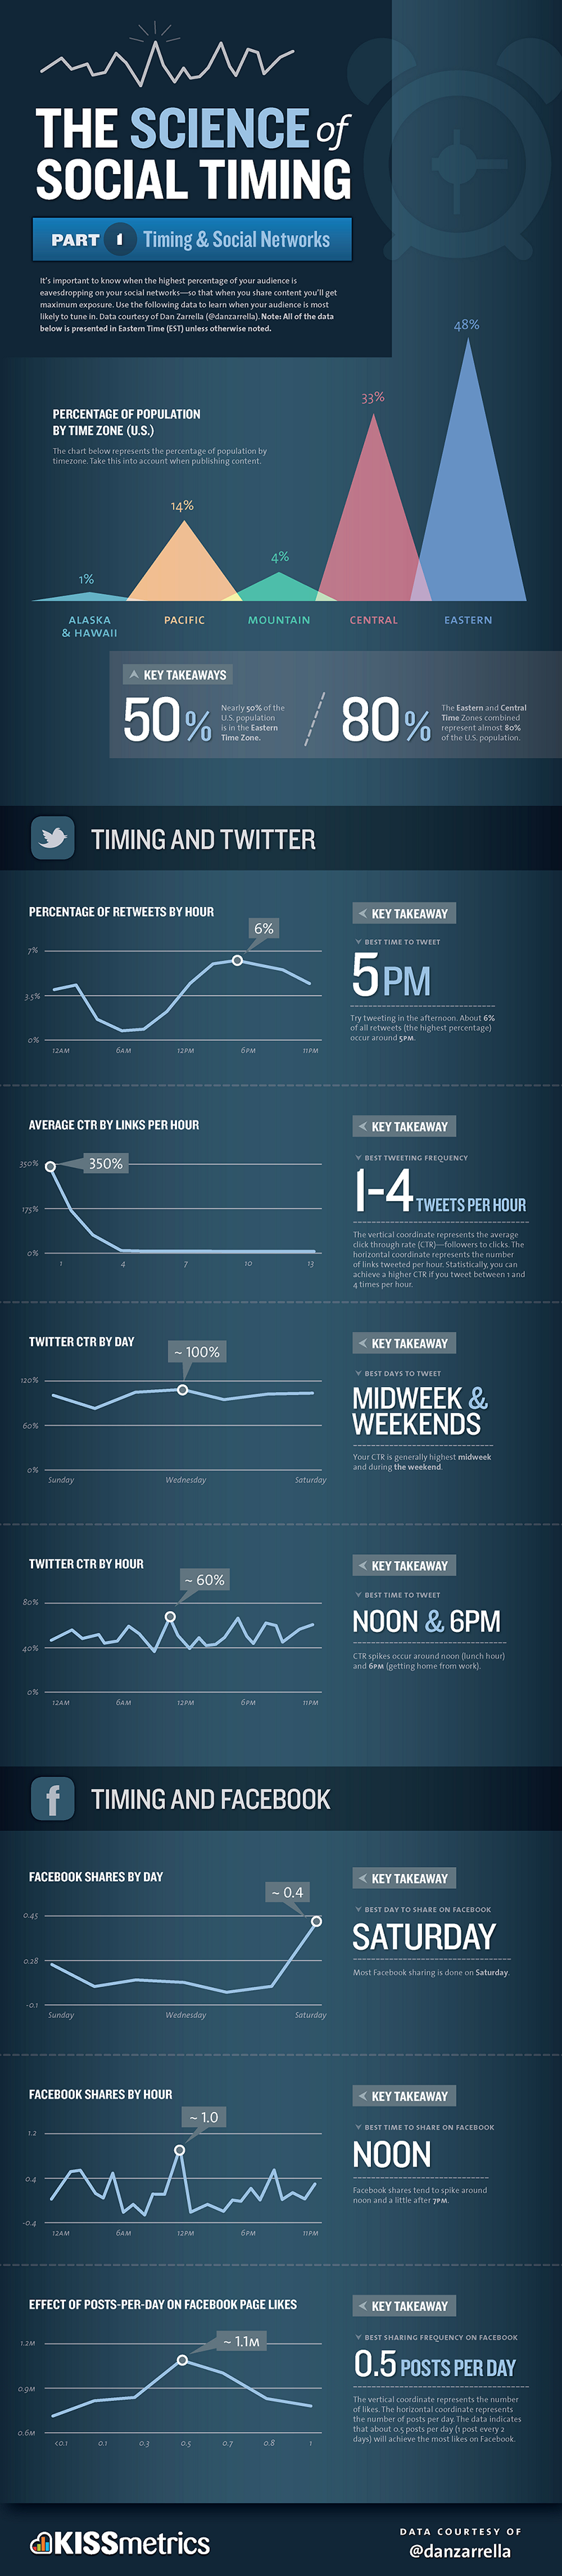 best times to post on Twitter and Facebook